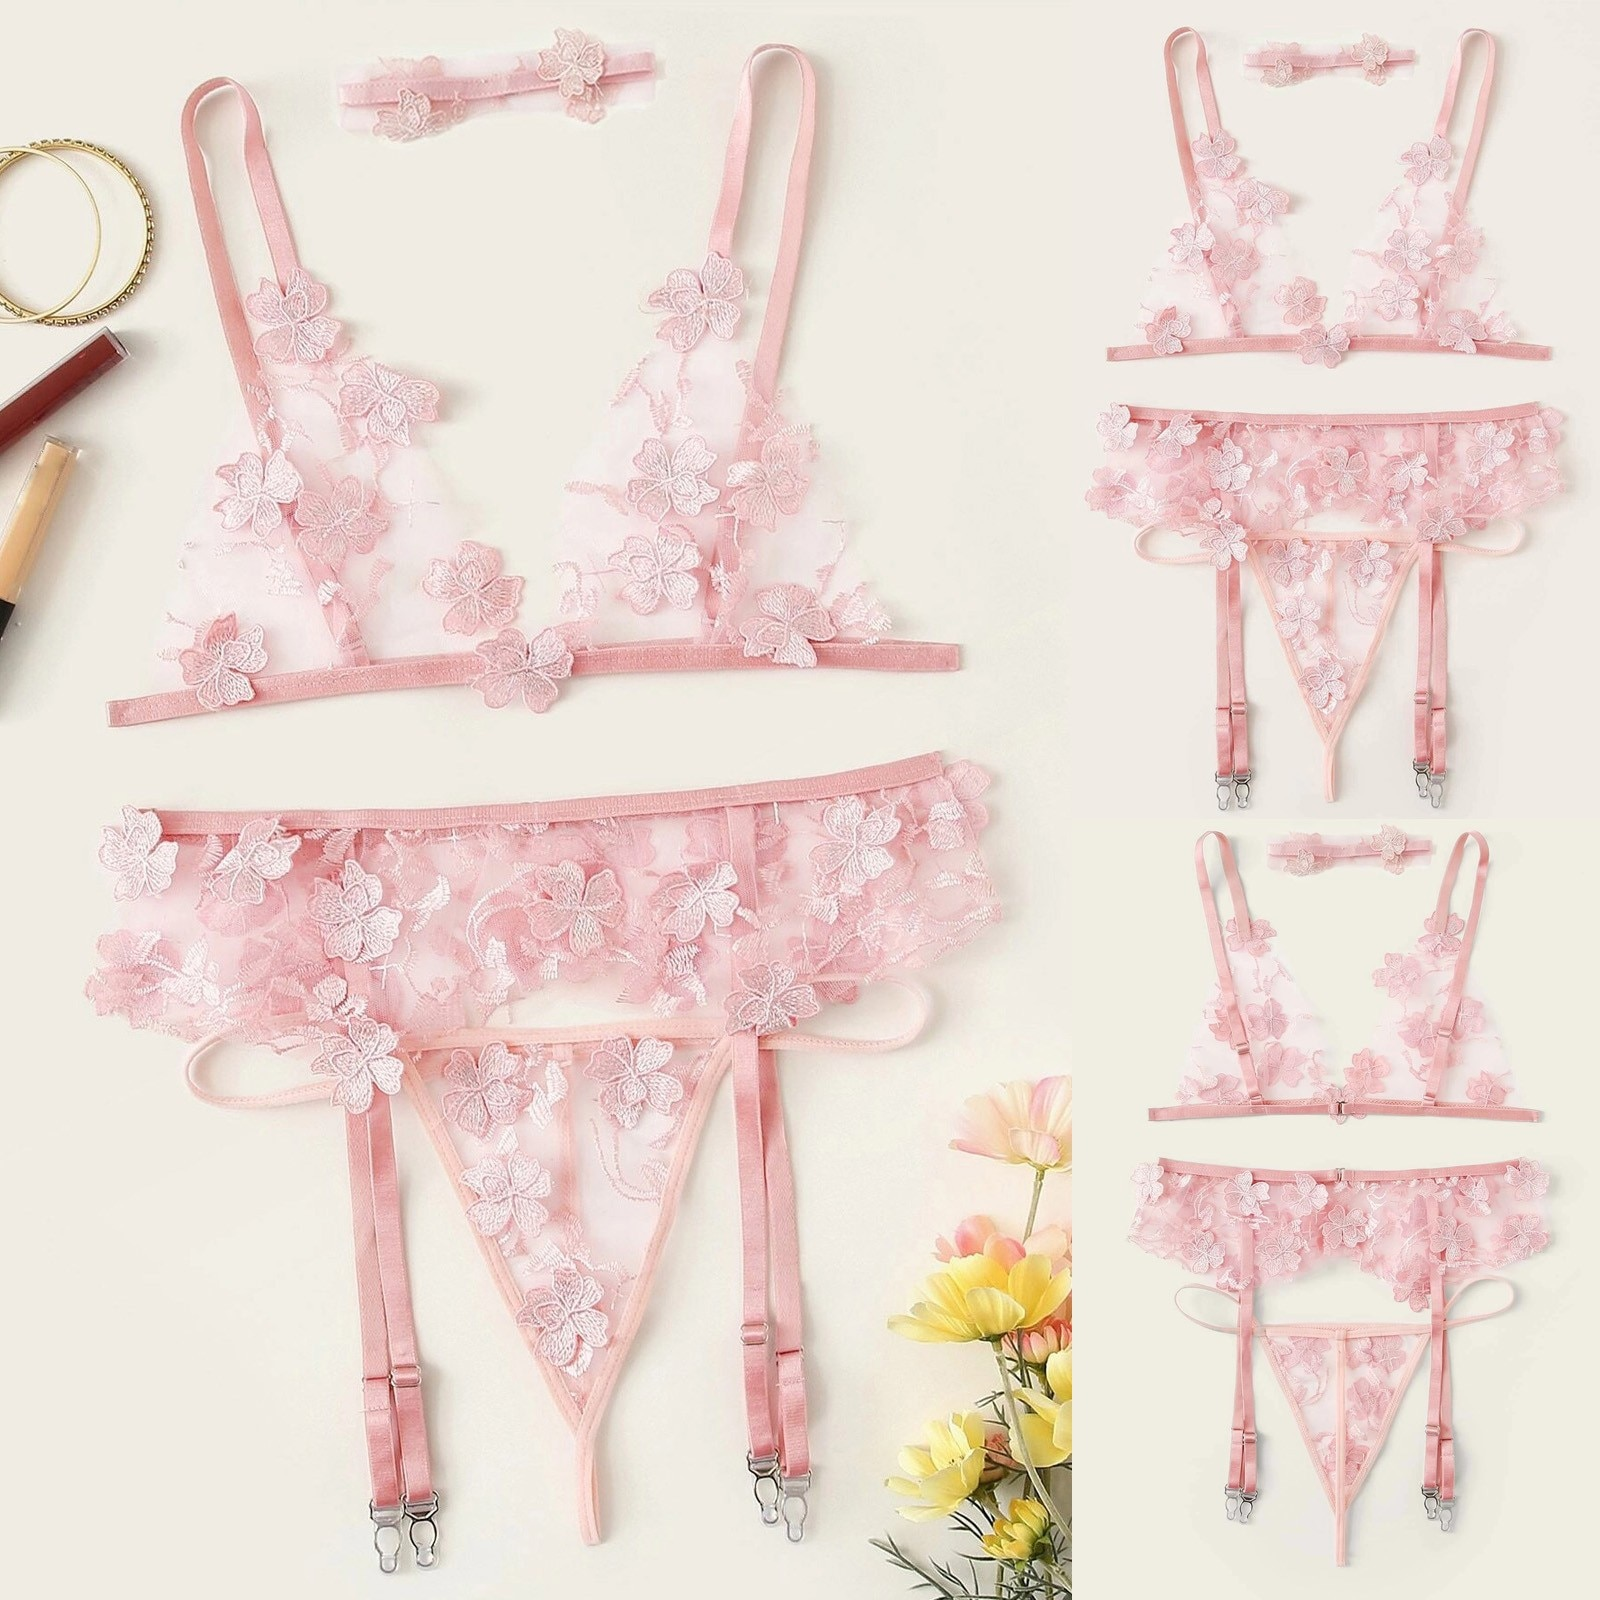 4pcs Sexy Underwear Set Flower Embroidered Garter Push-up Bra Panty Lingerie Thin Hang One's Neck Thong intimates Sets #40